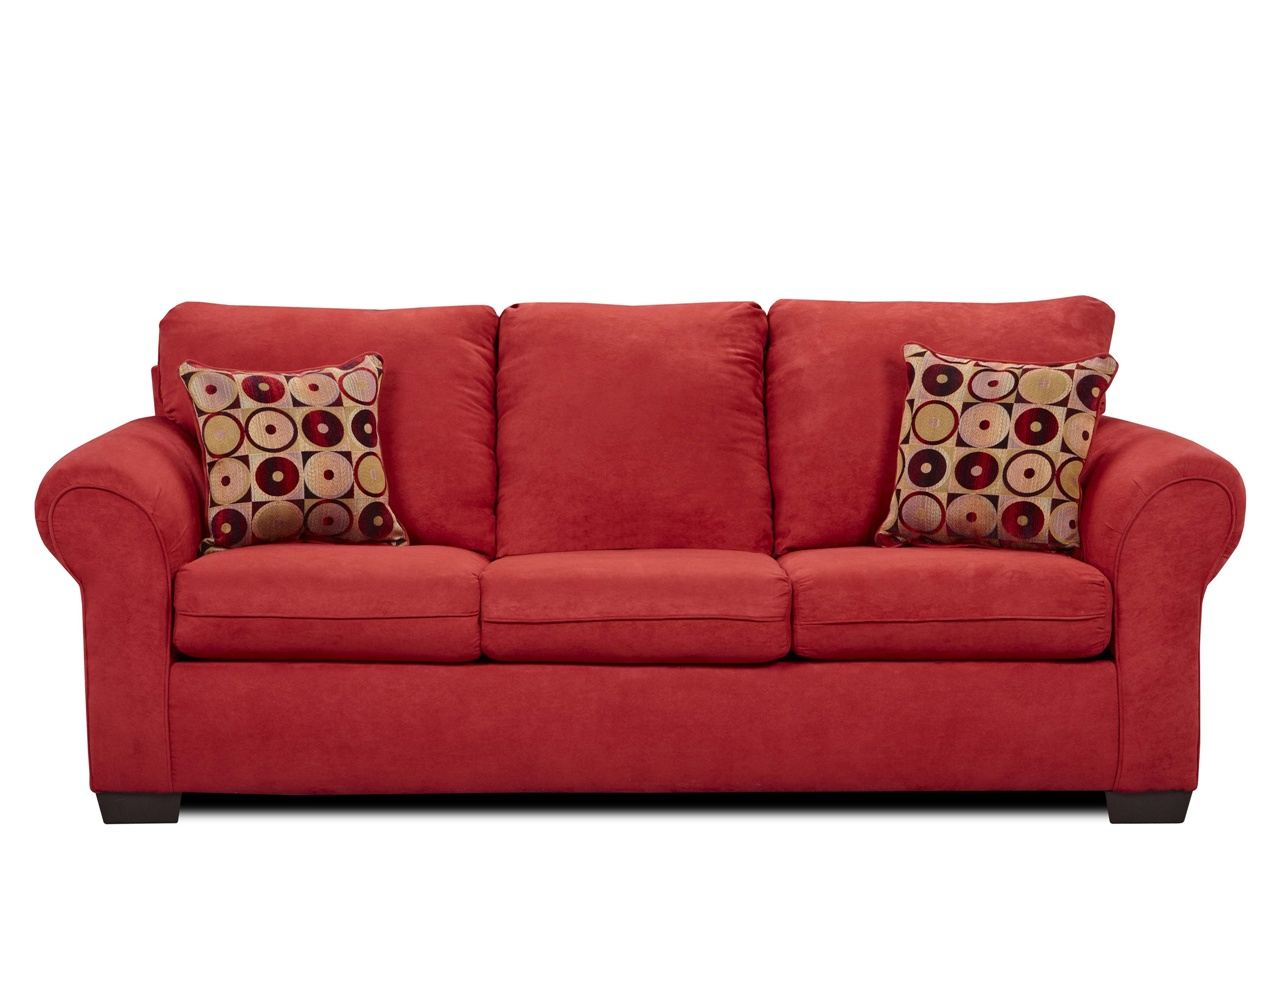 Cute cheapest couches available online couch sofa for Inexpensive couch sets